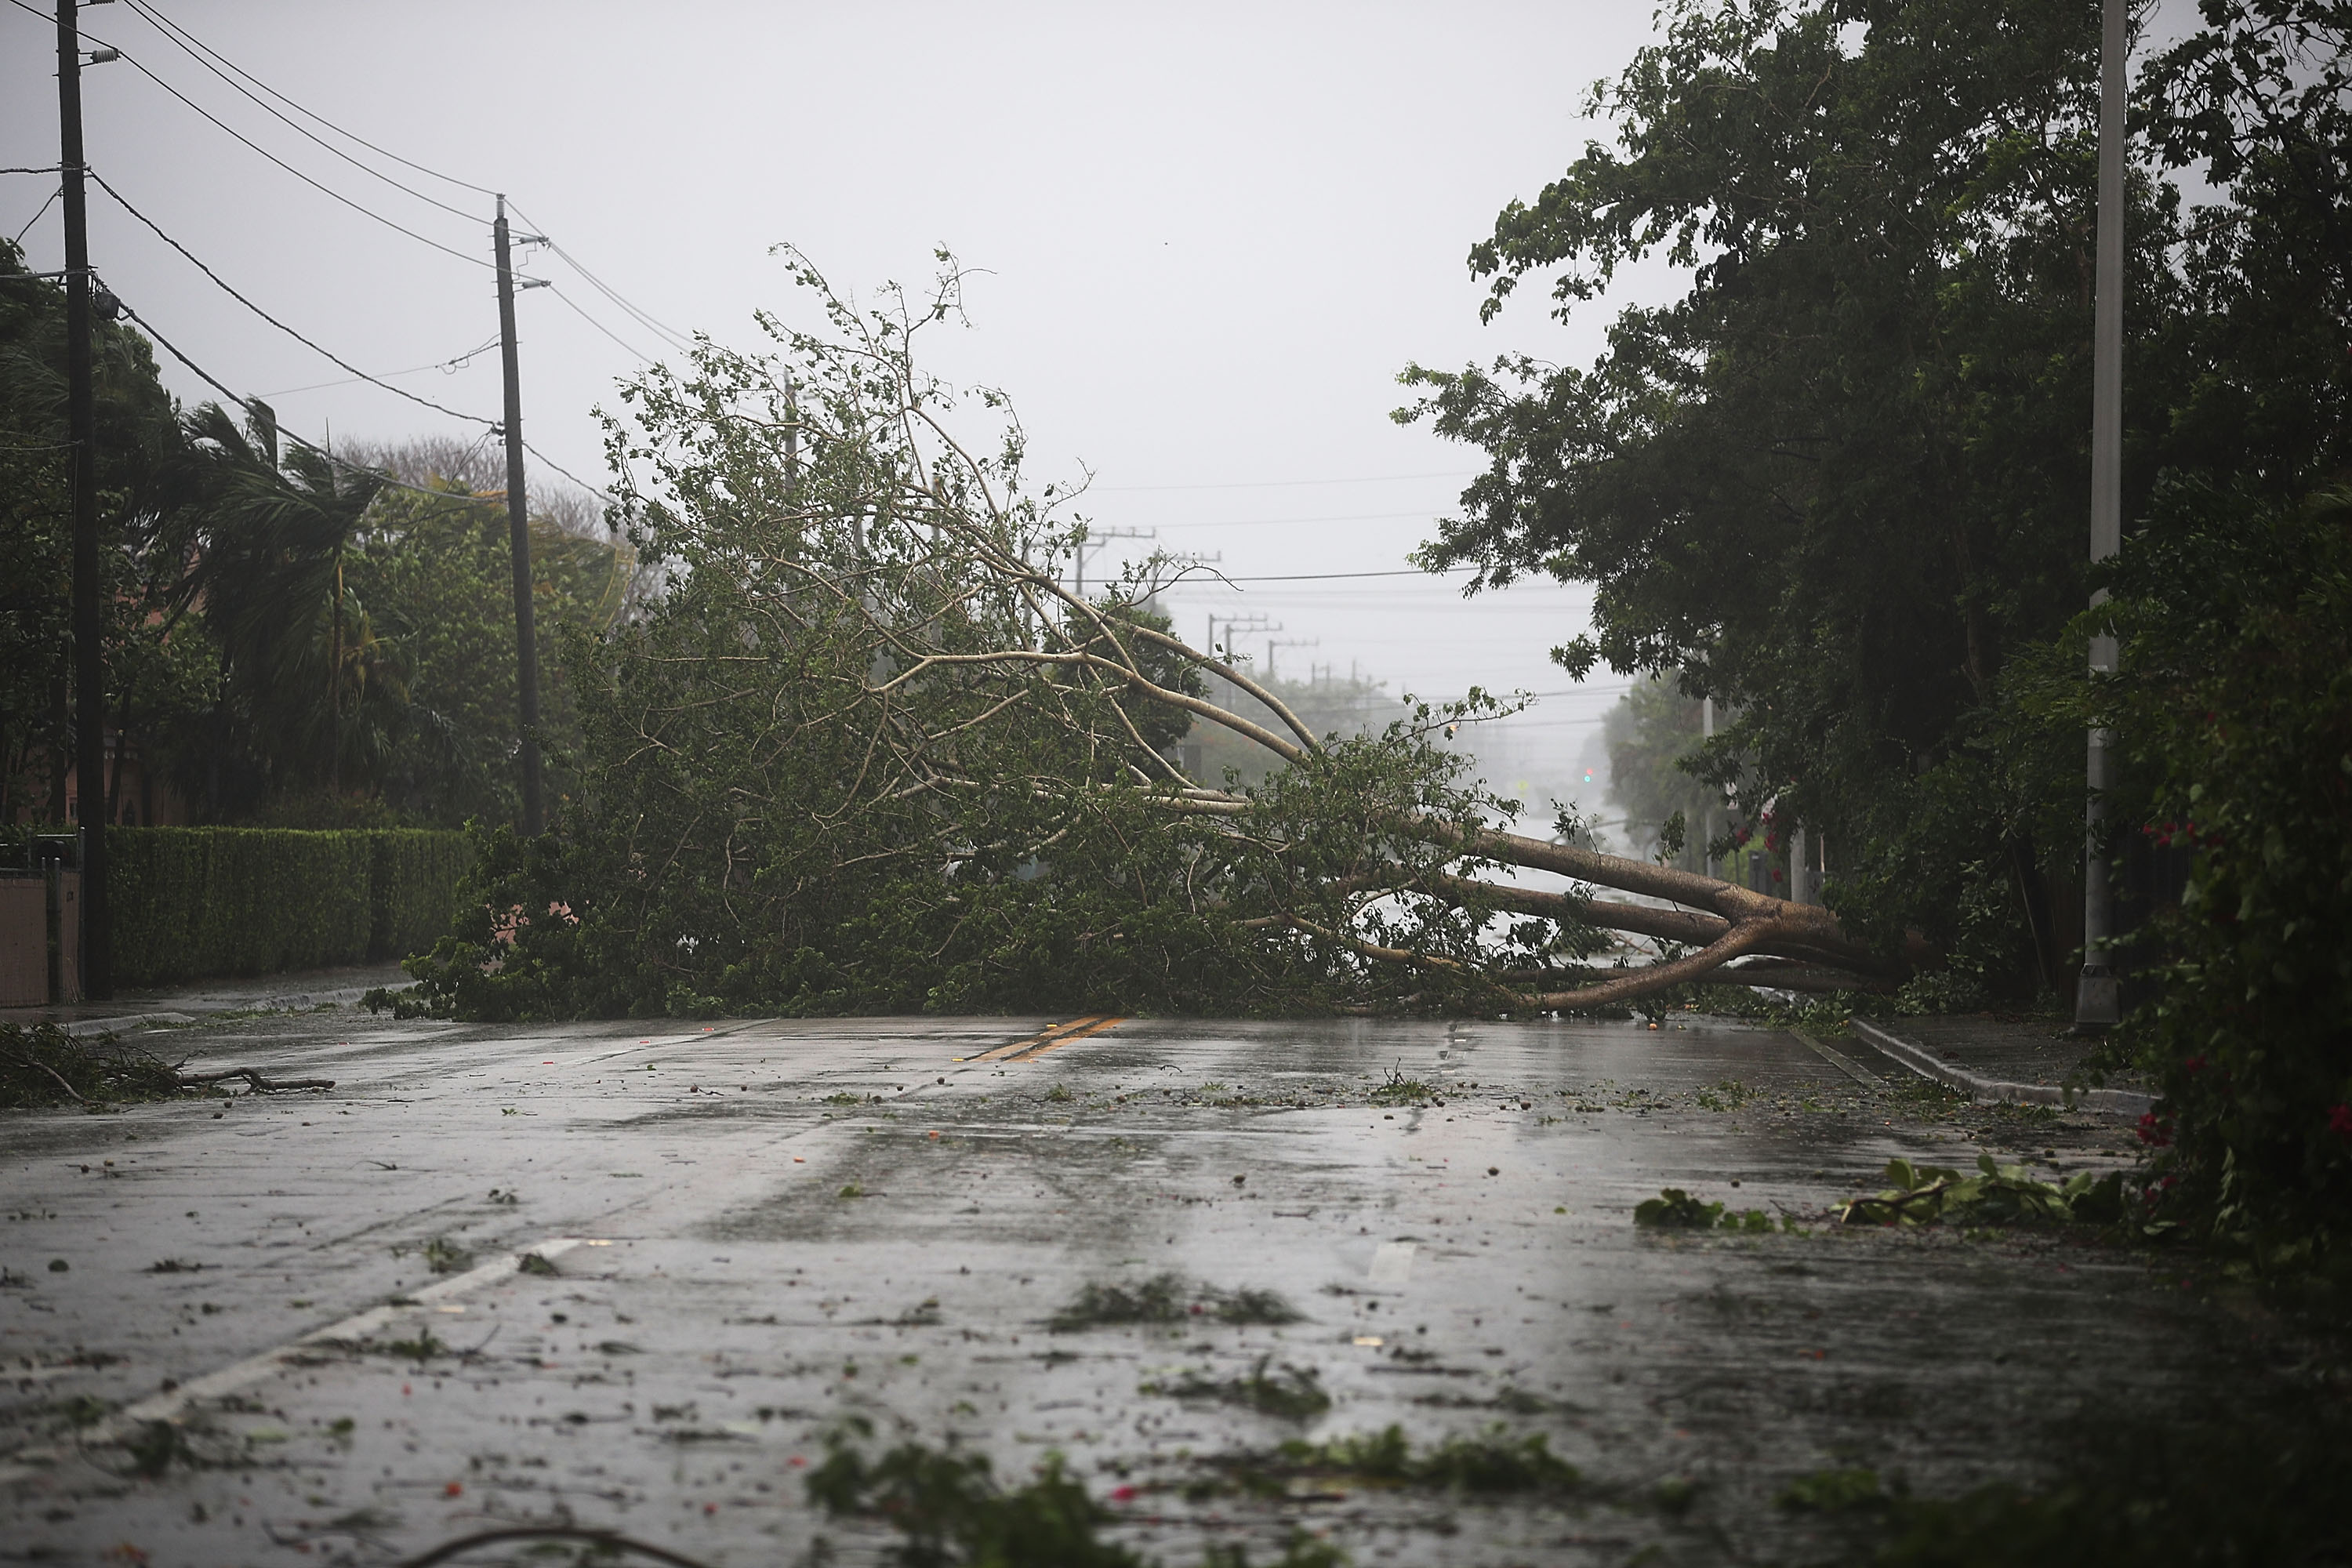 MIAMI, FL - SEPTEMBER 10: Trees and branches are seen after being knocked down by the high winds as hurricane Irma arrives on September 10, 2017 in Miami, Florida. Hurricane Irma made landfall in the Florida Keys as a Category 4 storm on Sunday, lashing the state with 130 mph winds. (Photo by Joe Raedle/Getty Images)